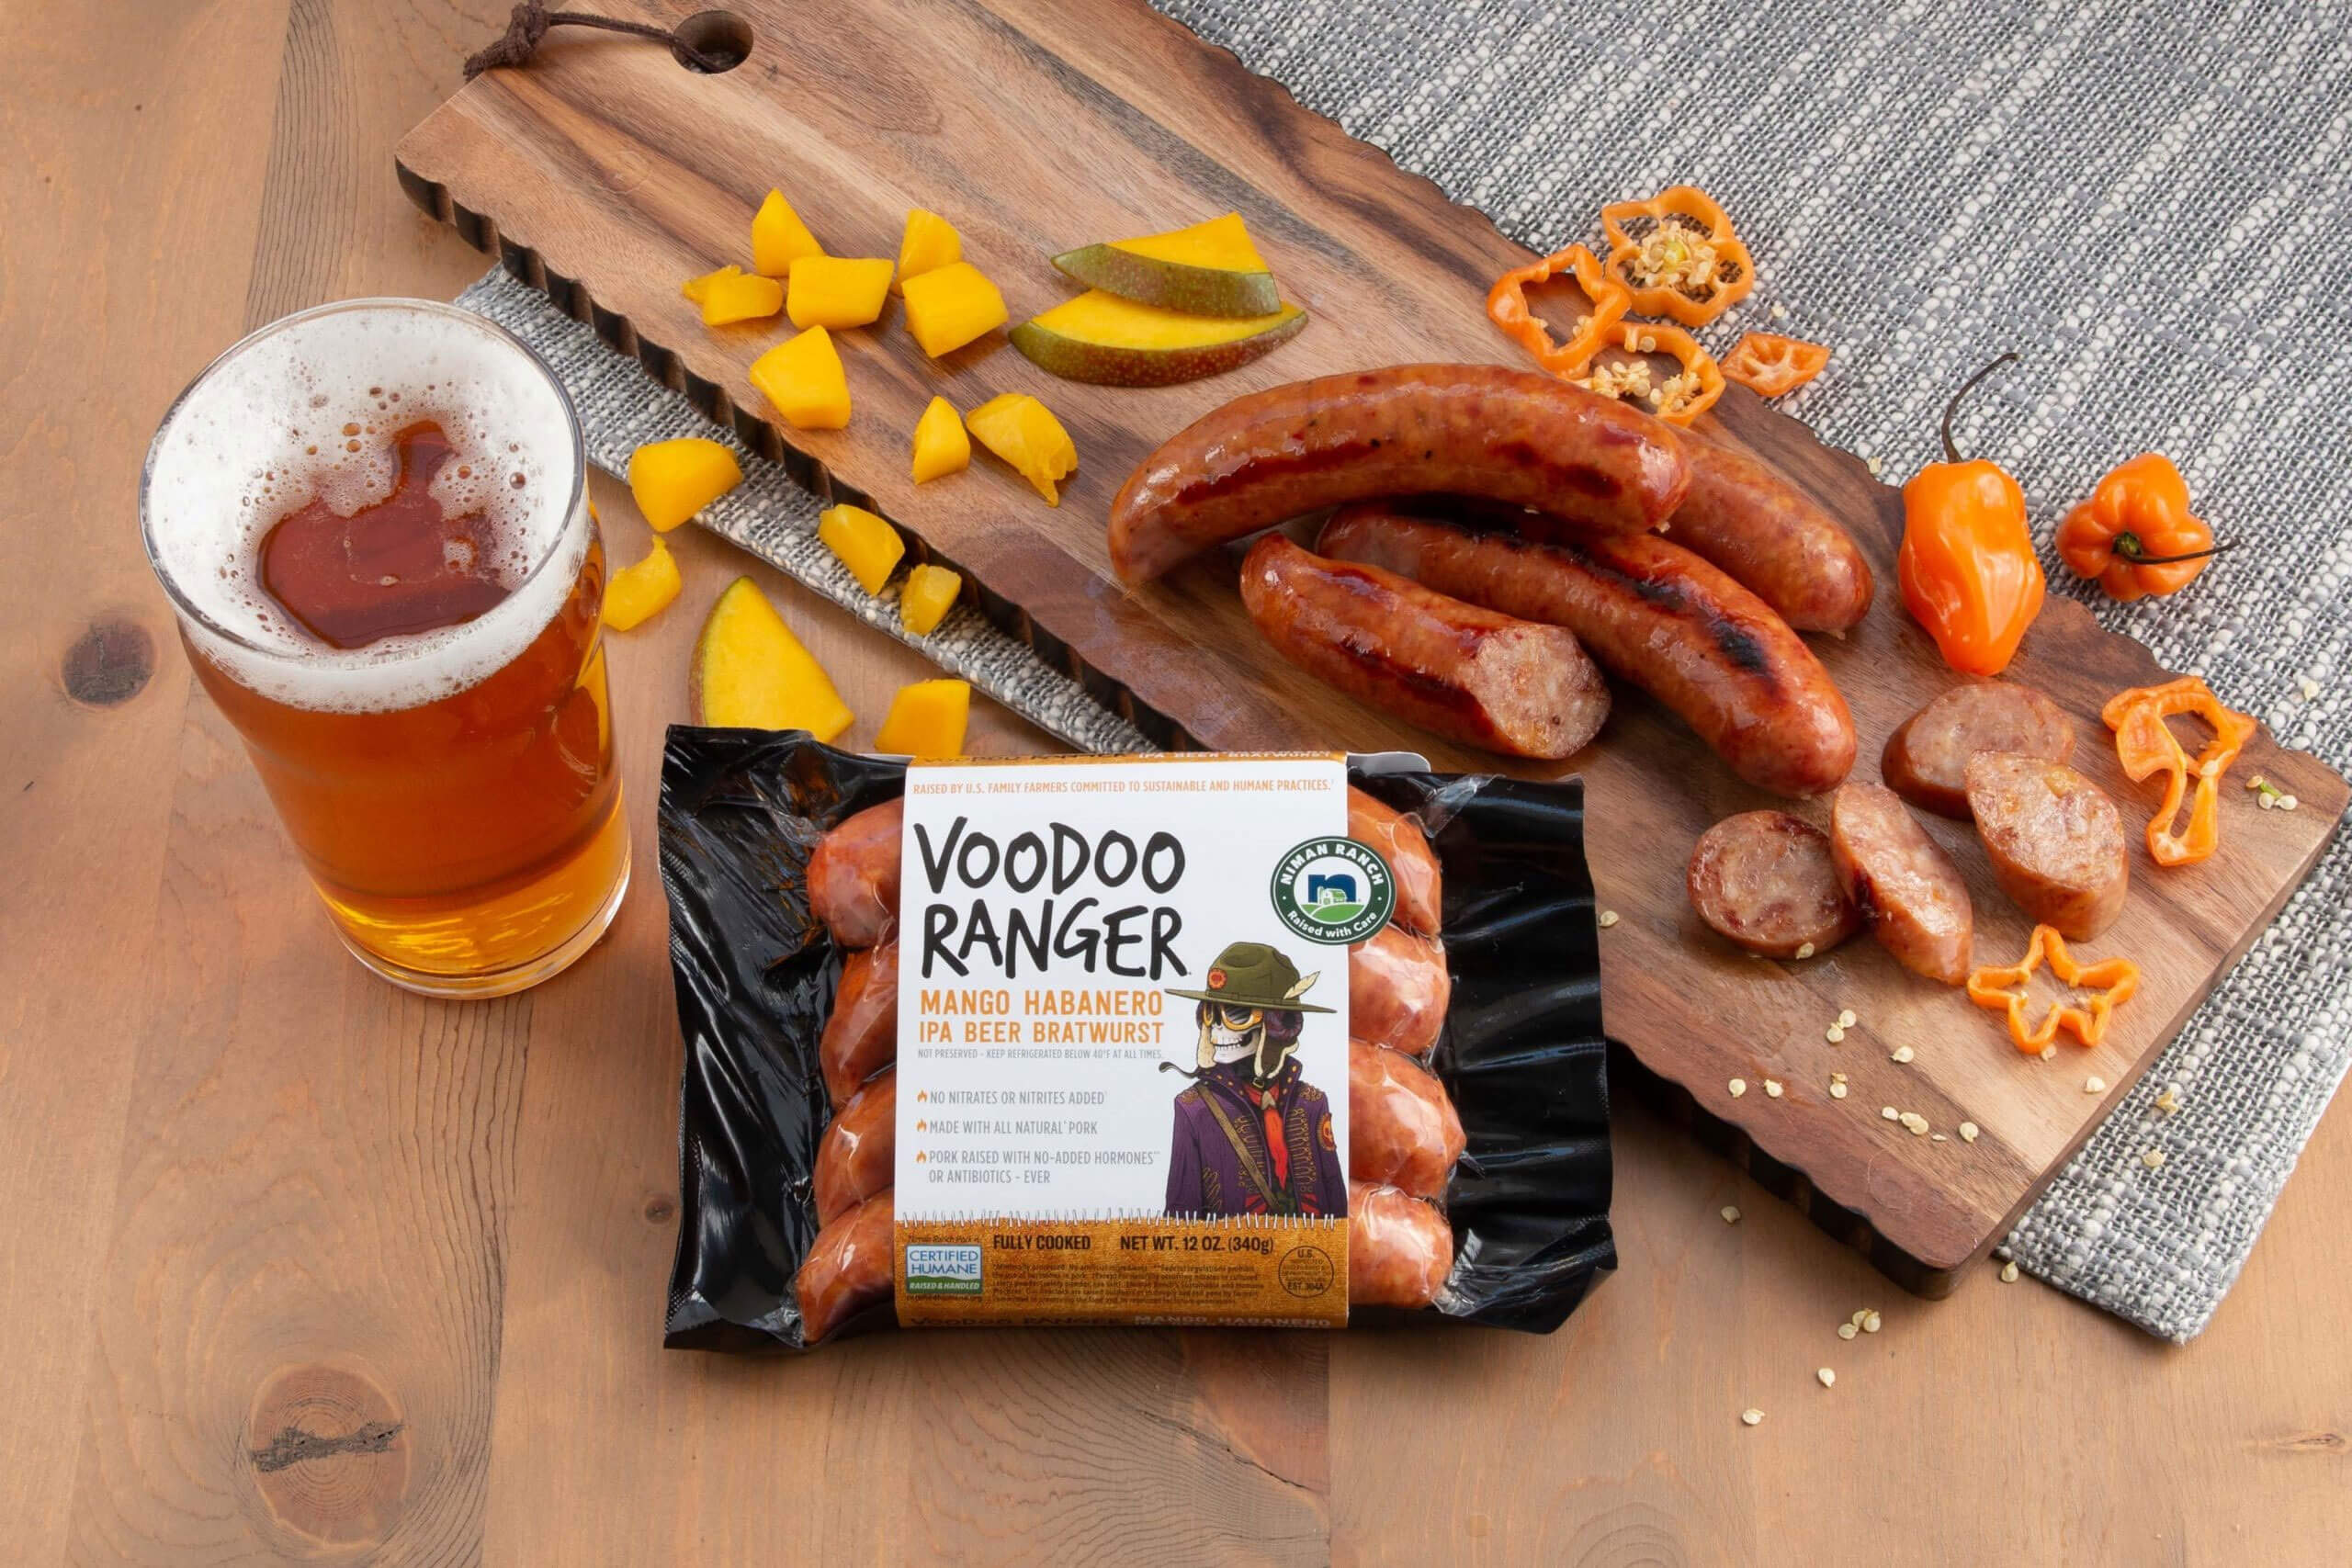 Niman Ranch and New Belgium Brewing Company have debuted the bold and spicy Voodoo Ranger Mango Habanero IPA Beer Bratwurst, now available nationwide.